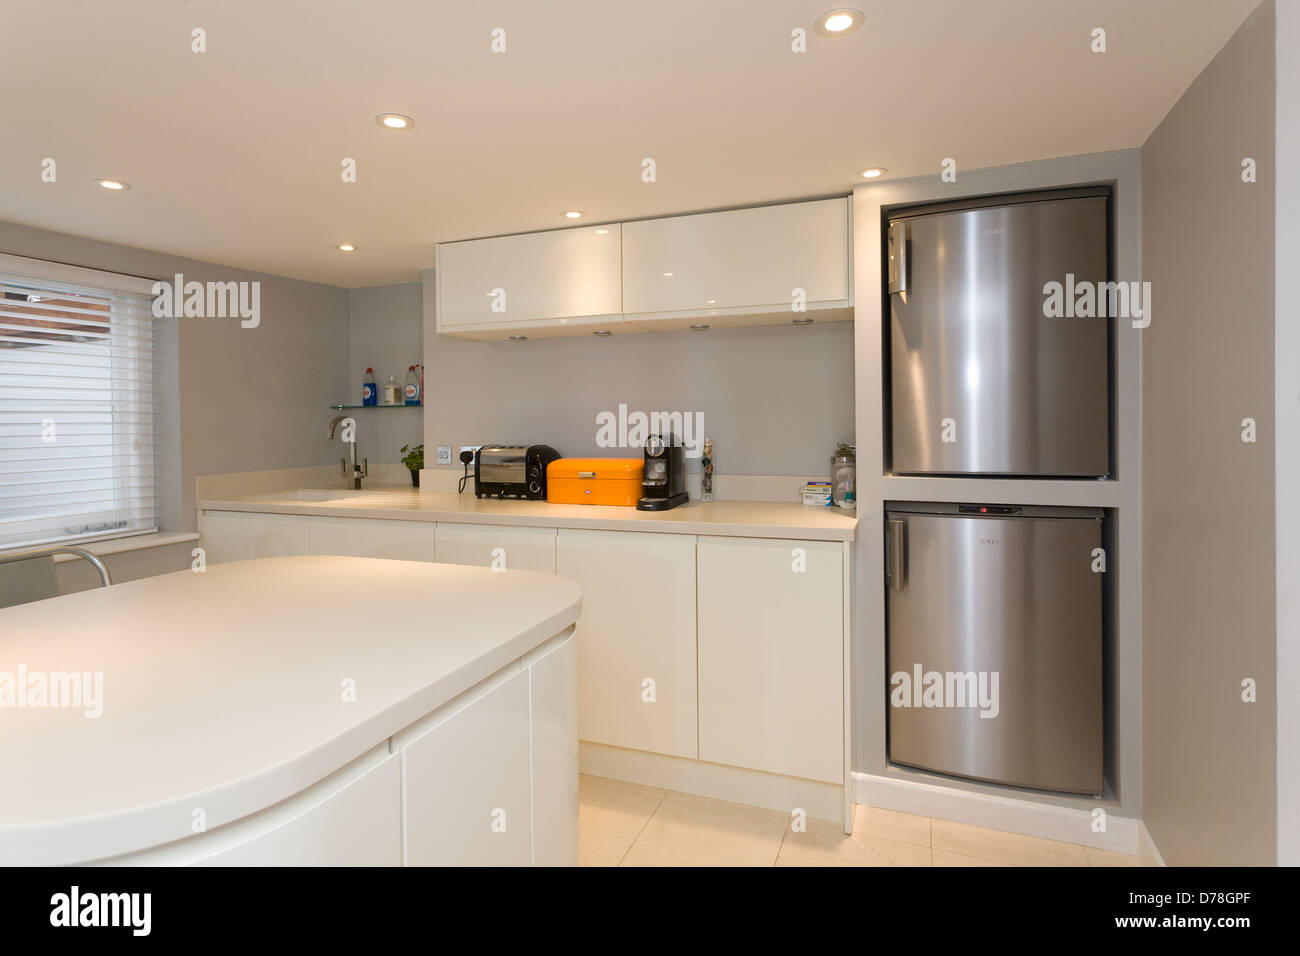 Basement Kitchen Stockfotos & Basement Kitchen Bilder - Alamy